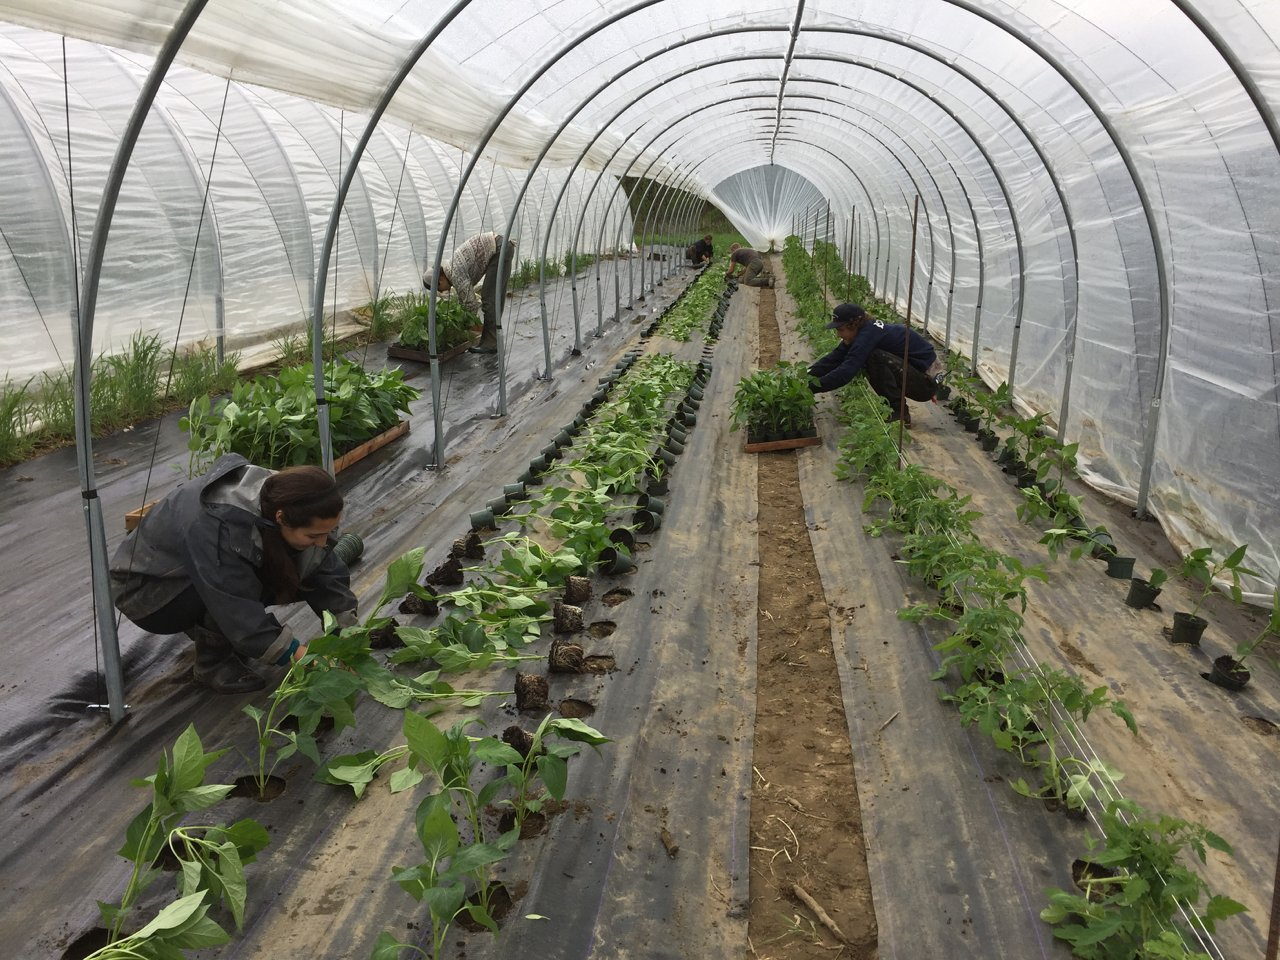 Farm Happenings for May 14, 2019